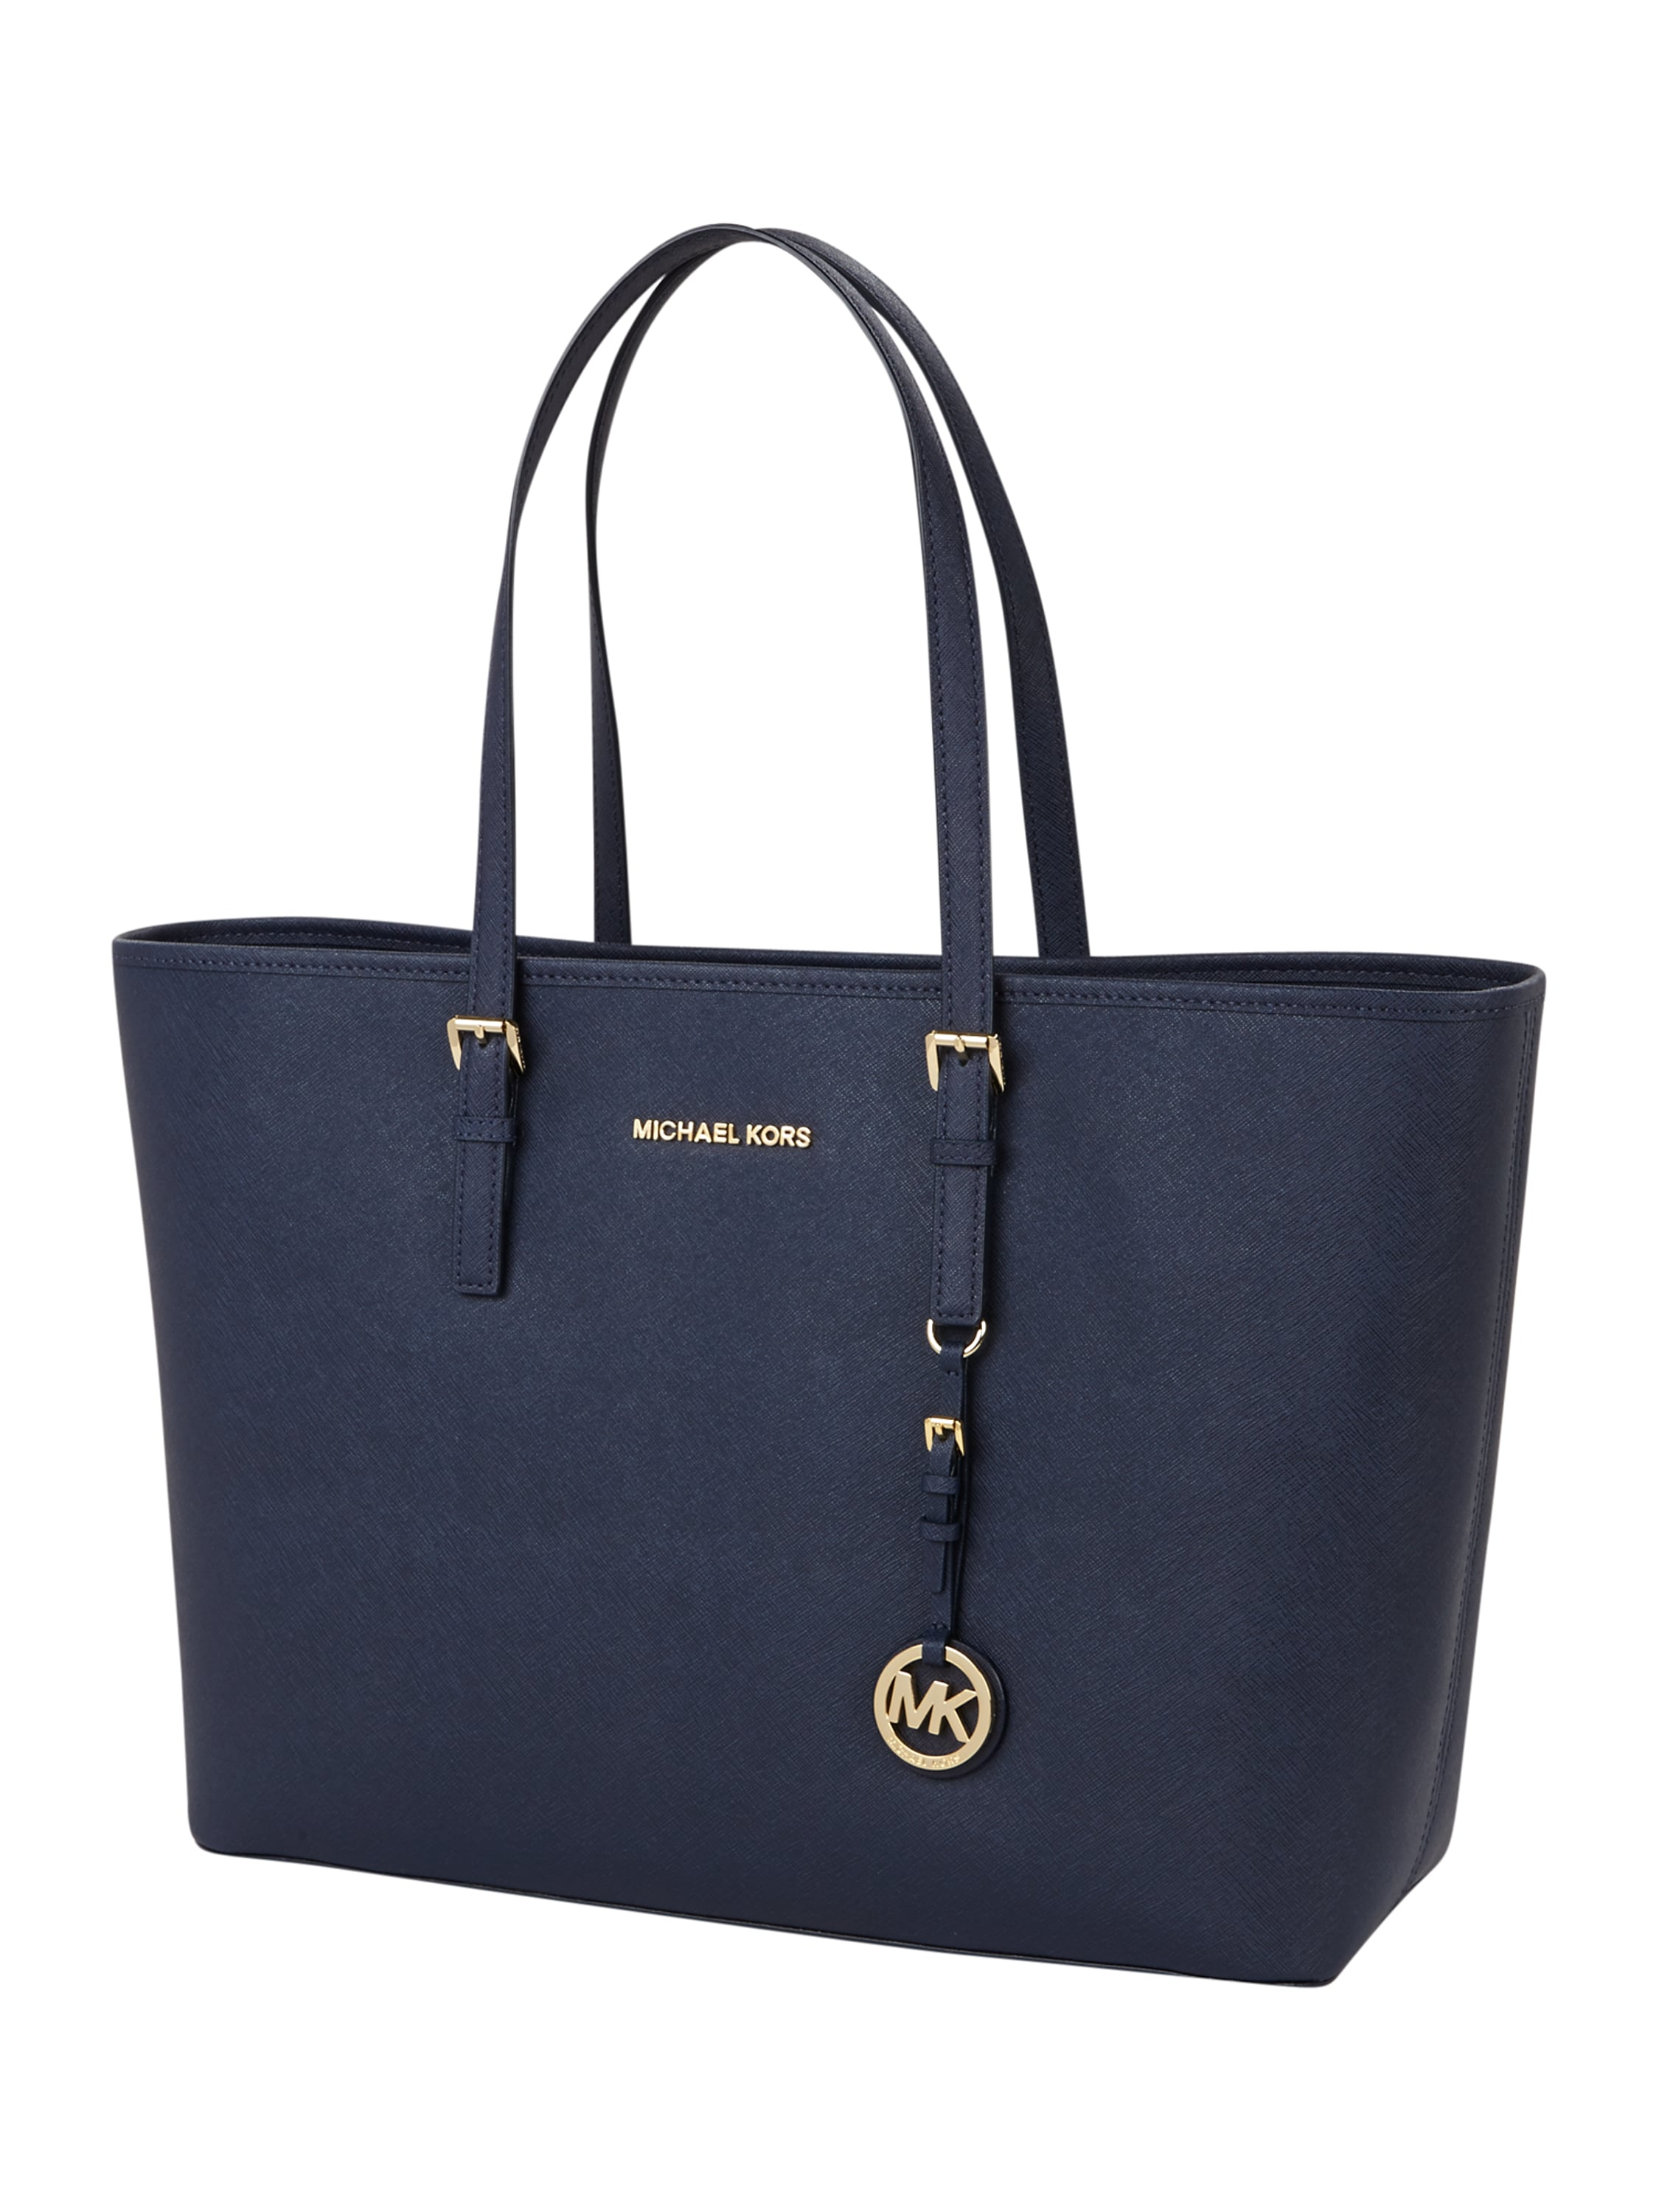 michael kors jet set travel medium tote aus saffiano leder. Black Bedroom Furniture Sets. Home Design Ideas